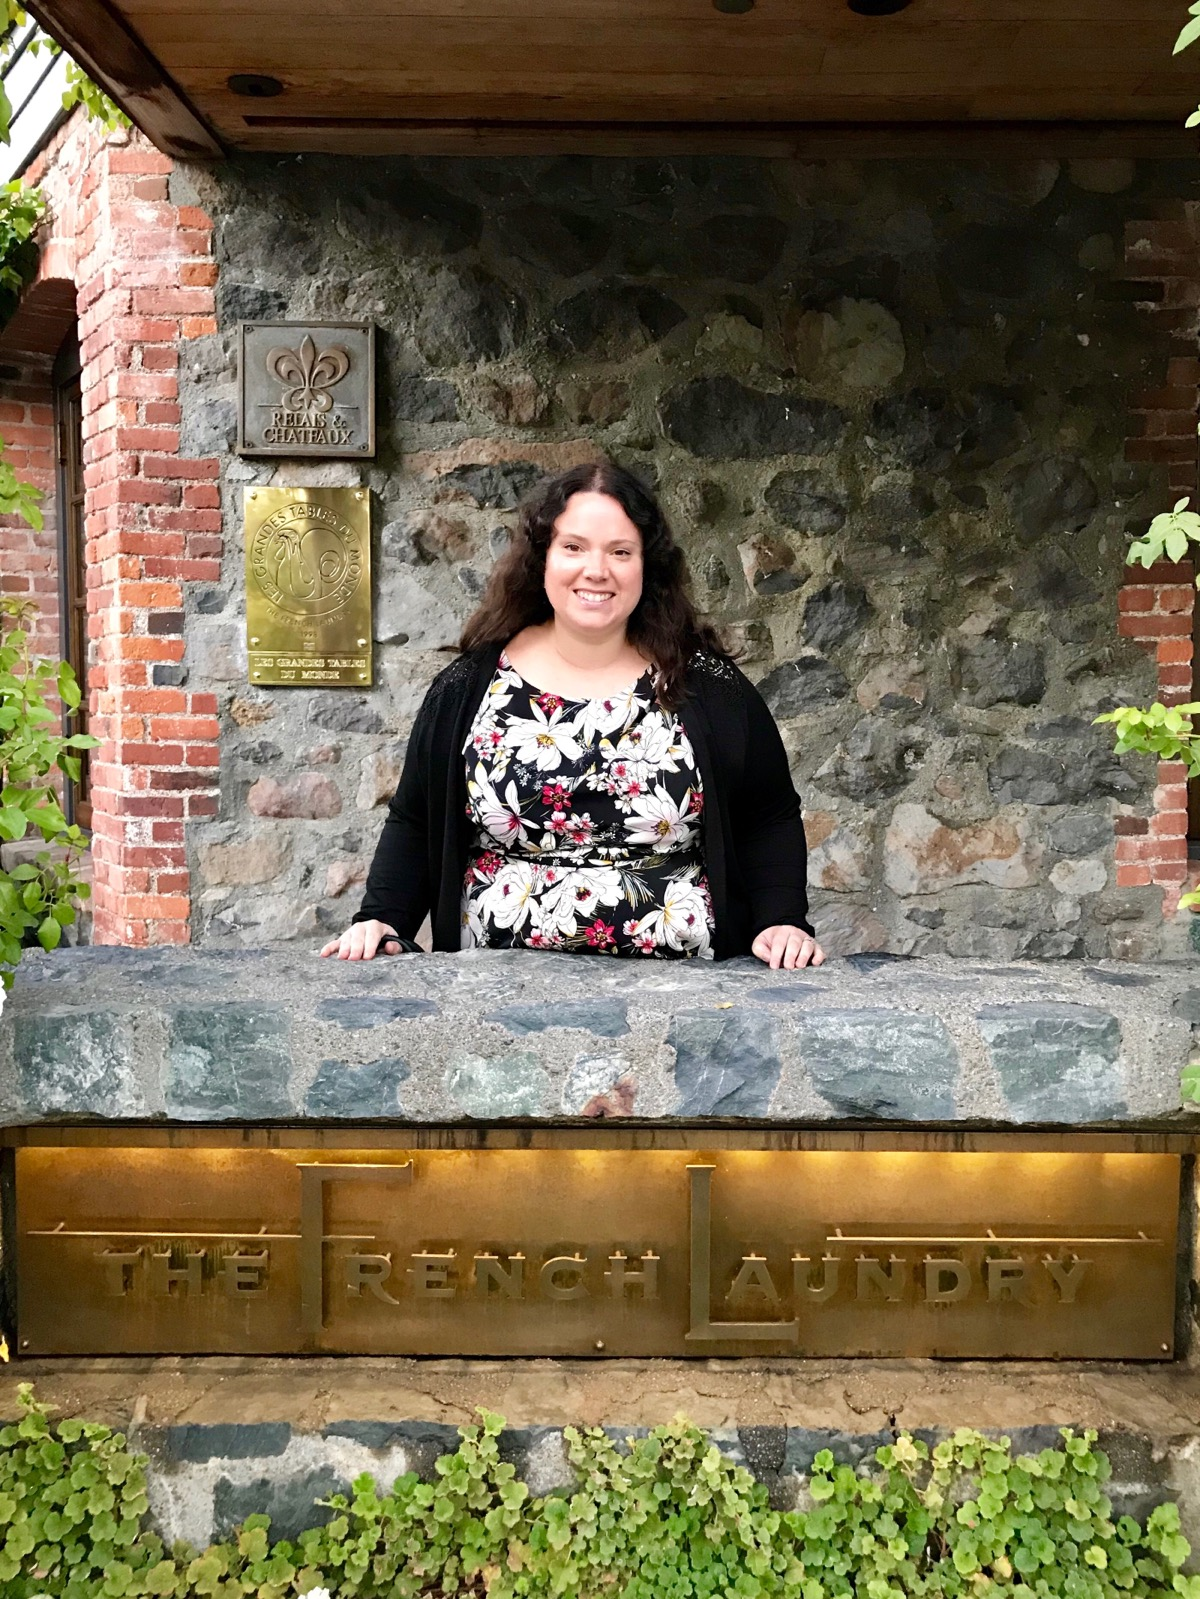 Lise in front of The French Laundry